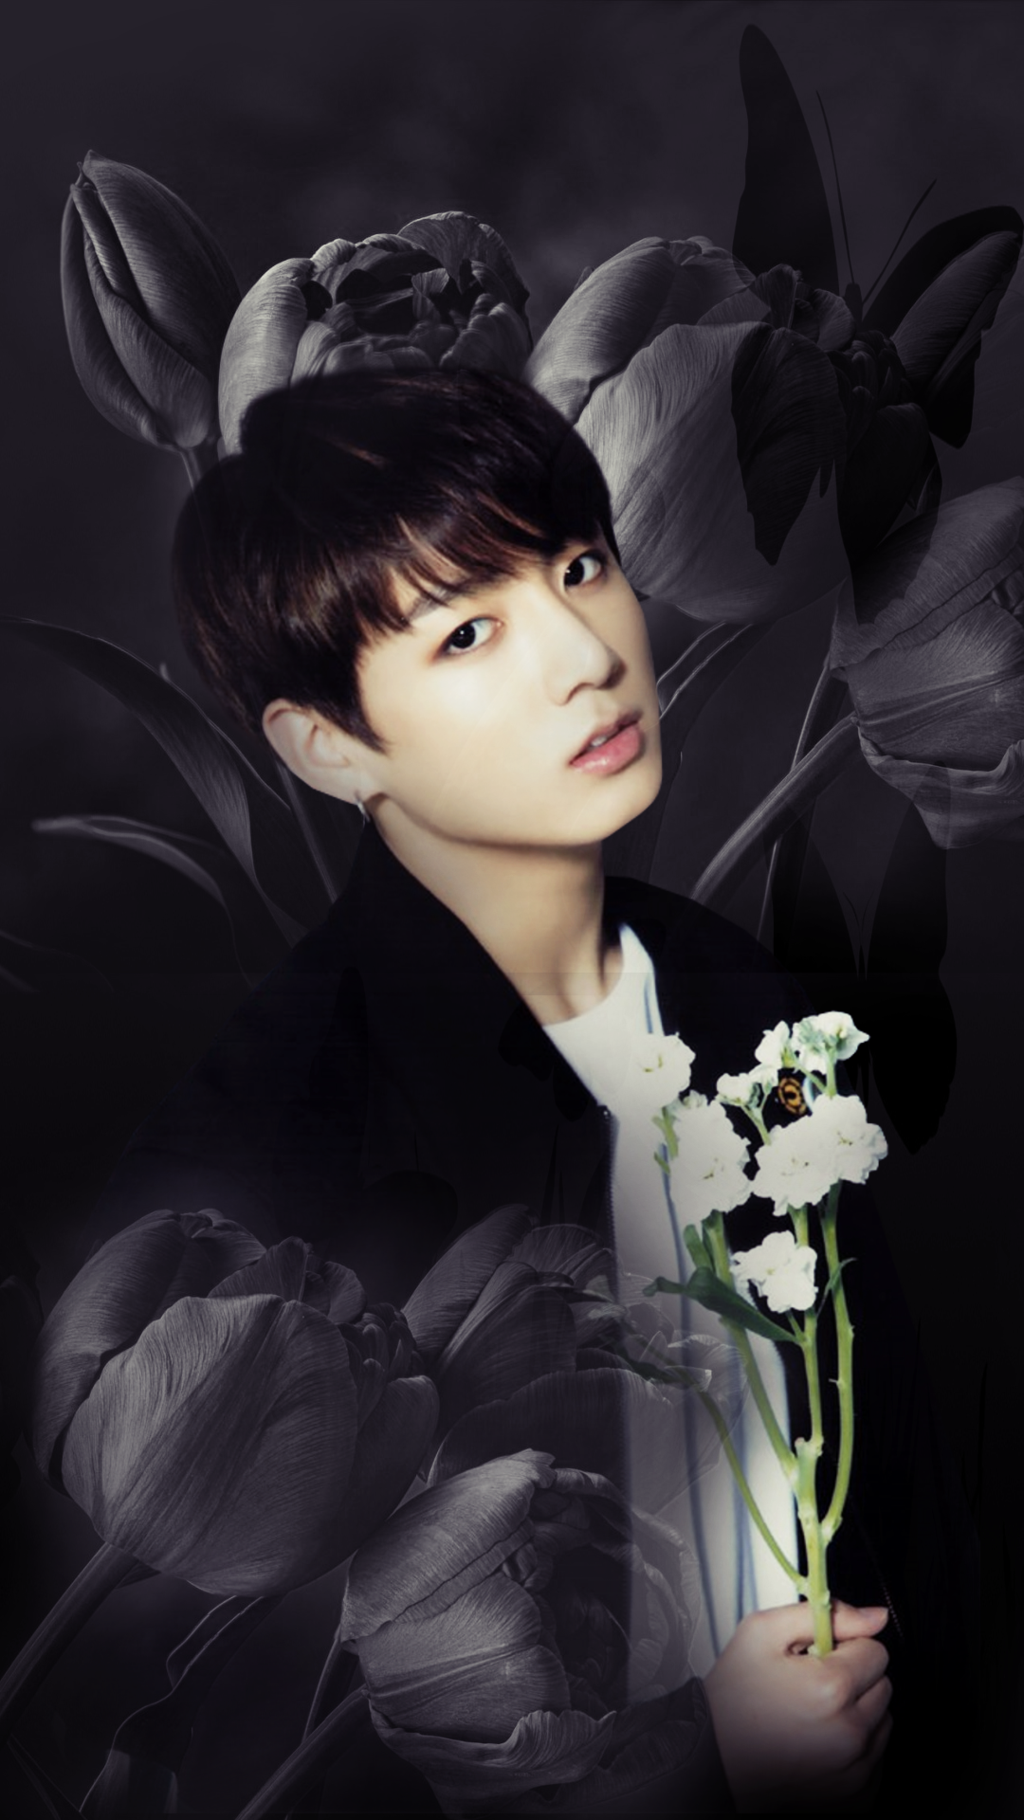 Jungkook (BTS) [Smartphone Wallpaper] (#1) by osche666 on DeviantArt